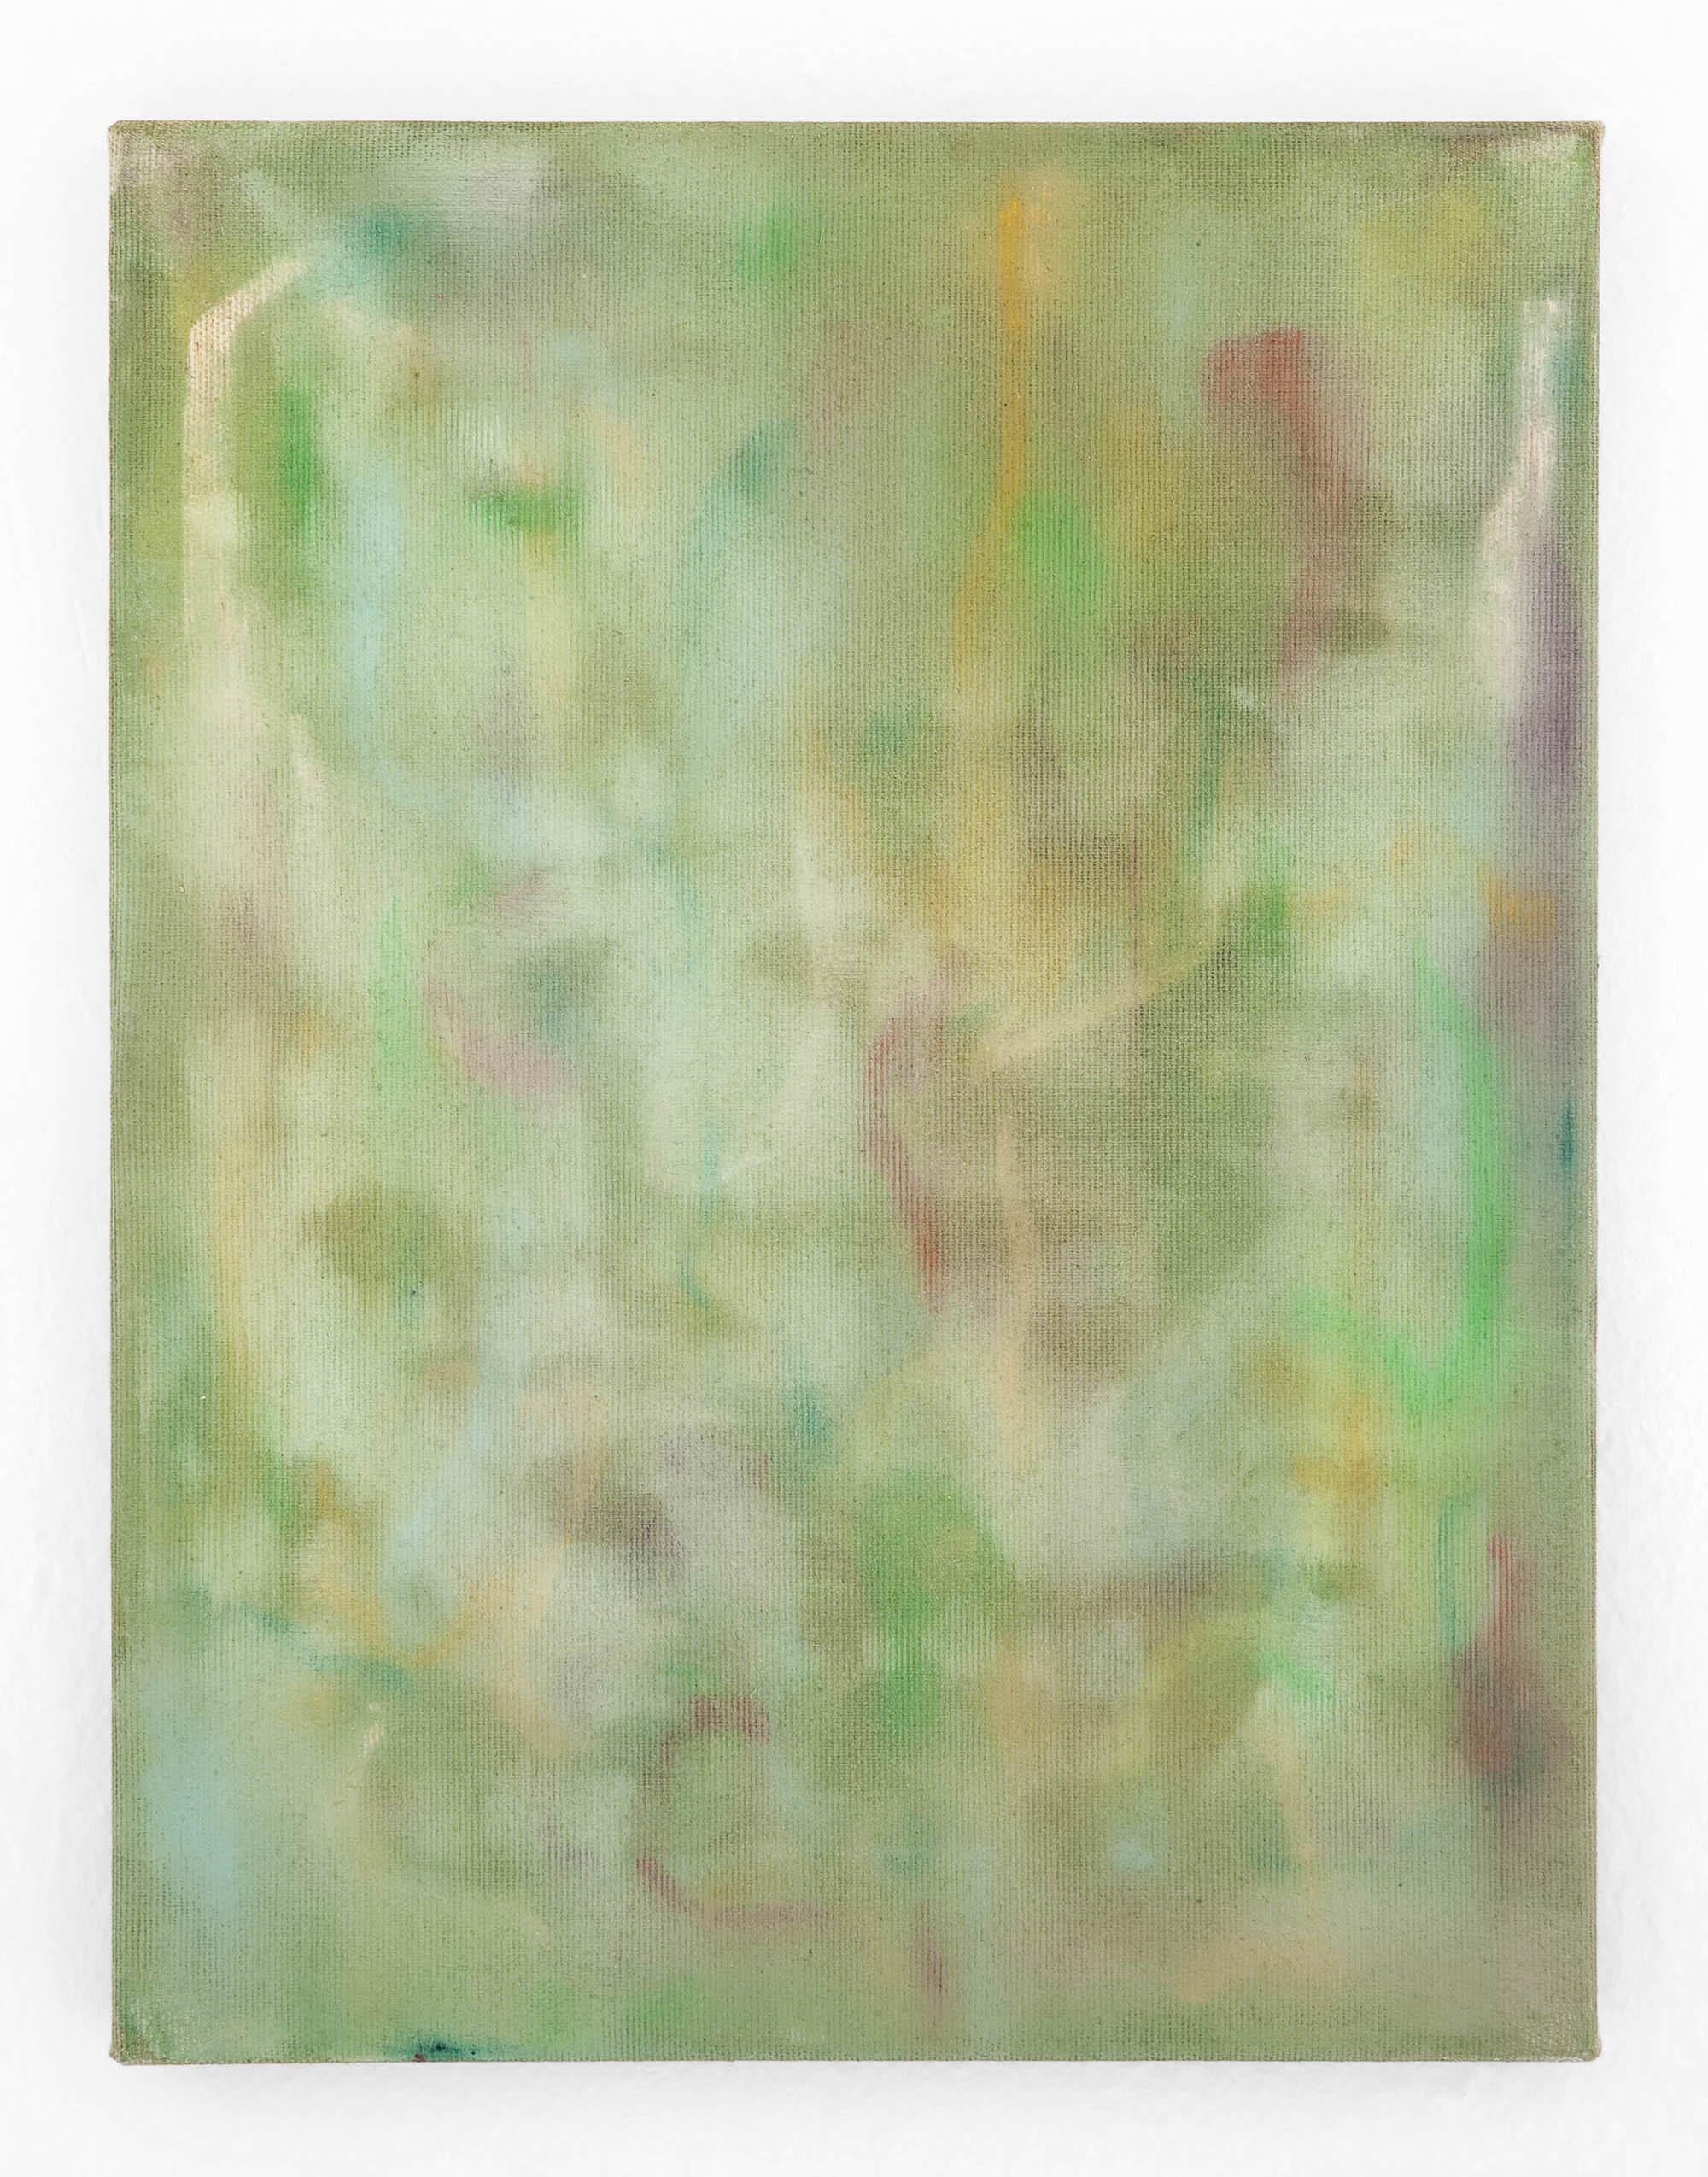 11 - Tyra Tingleff Untitled 2014 oil on canvas 40x30 cm - Courtesy Artist and Studiolo Milan - photo Filippo Armellin